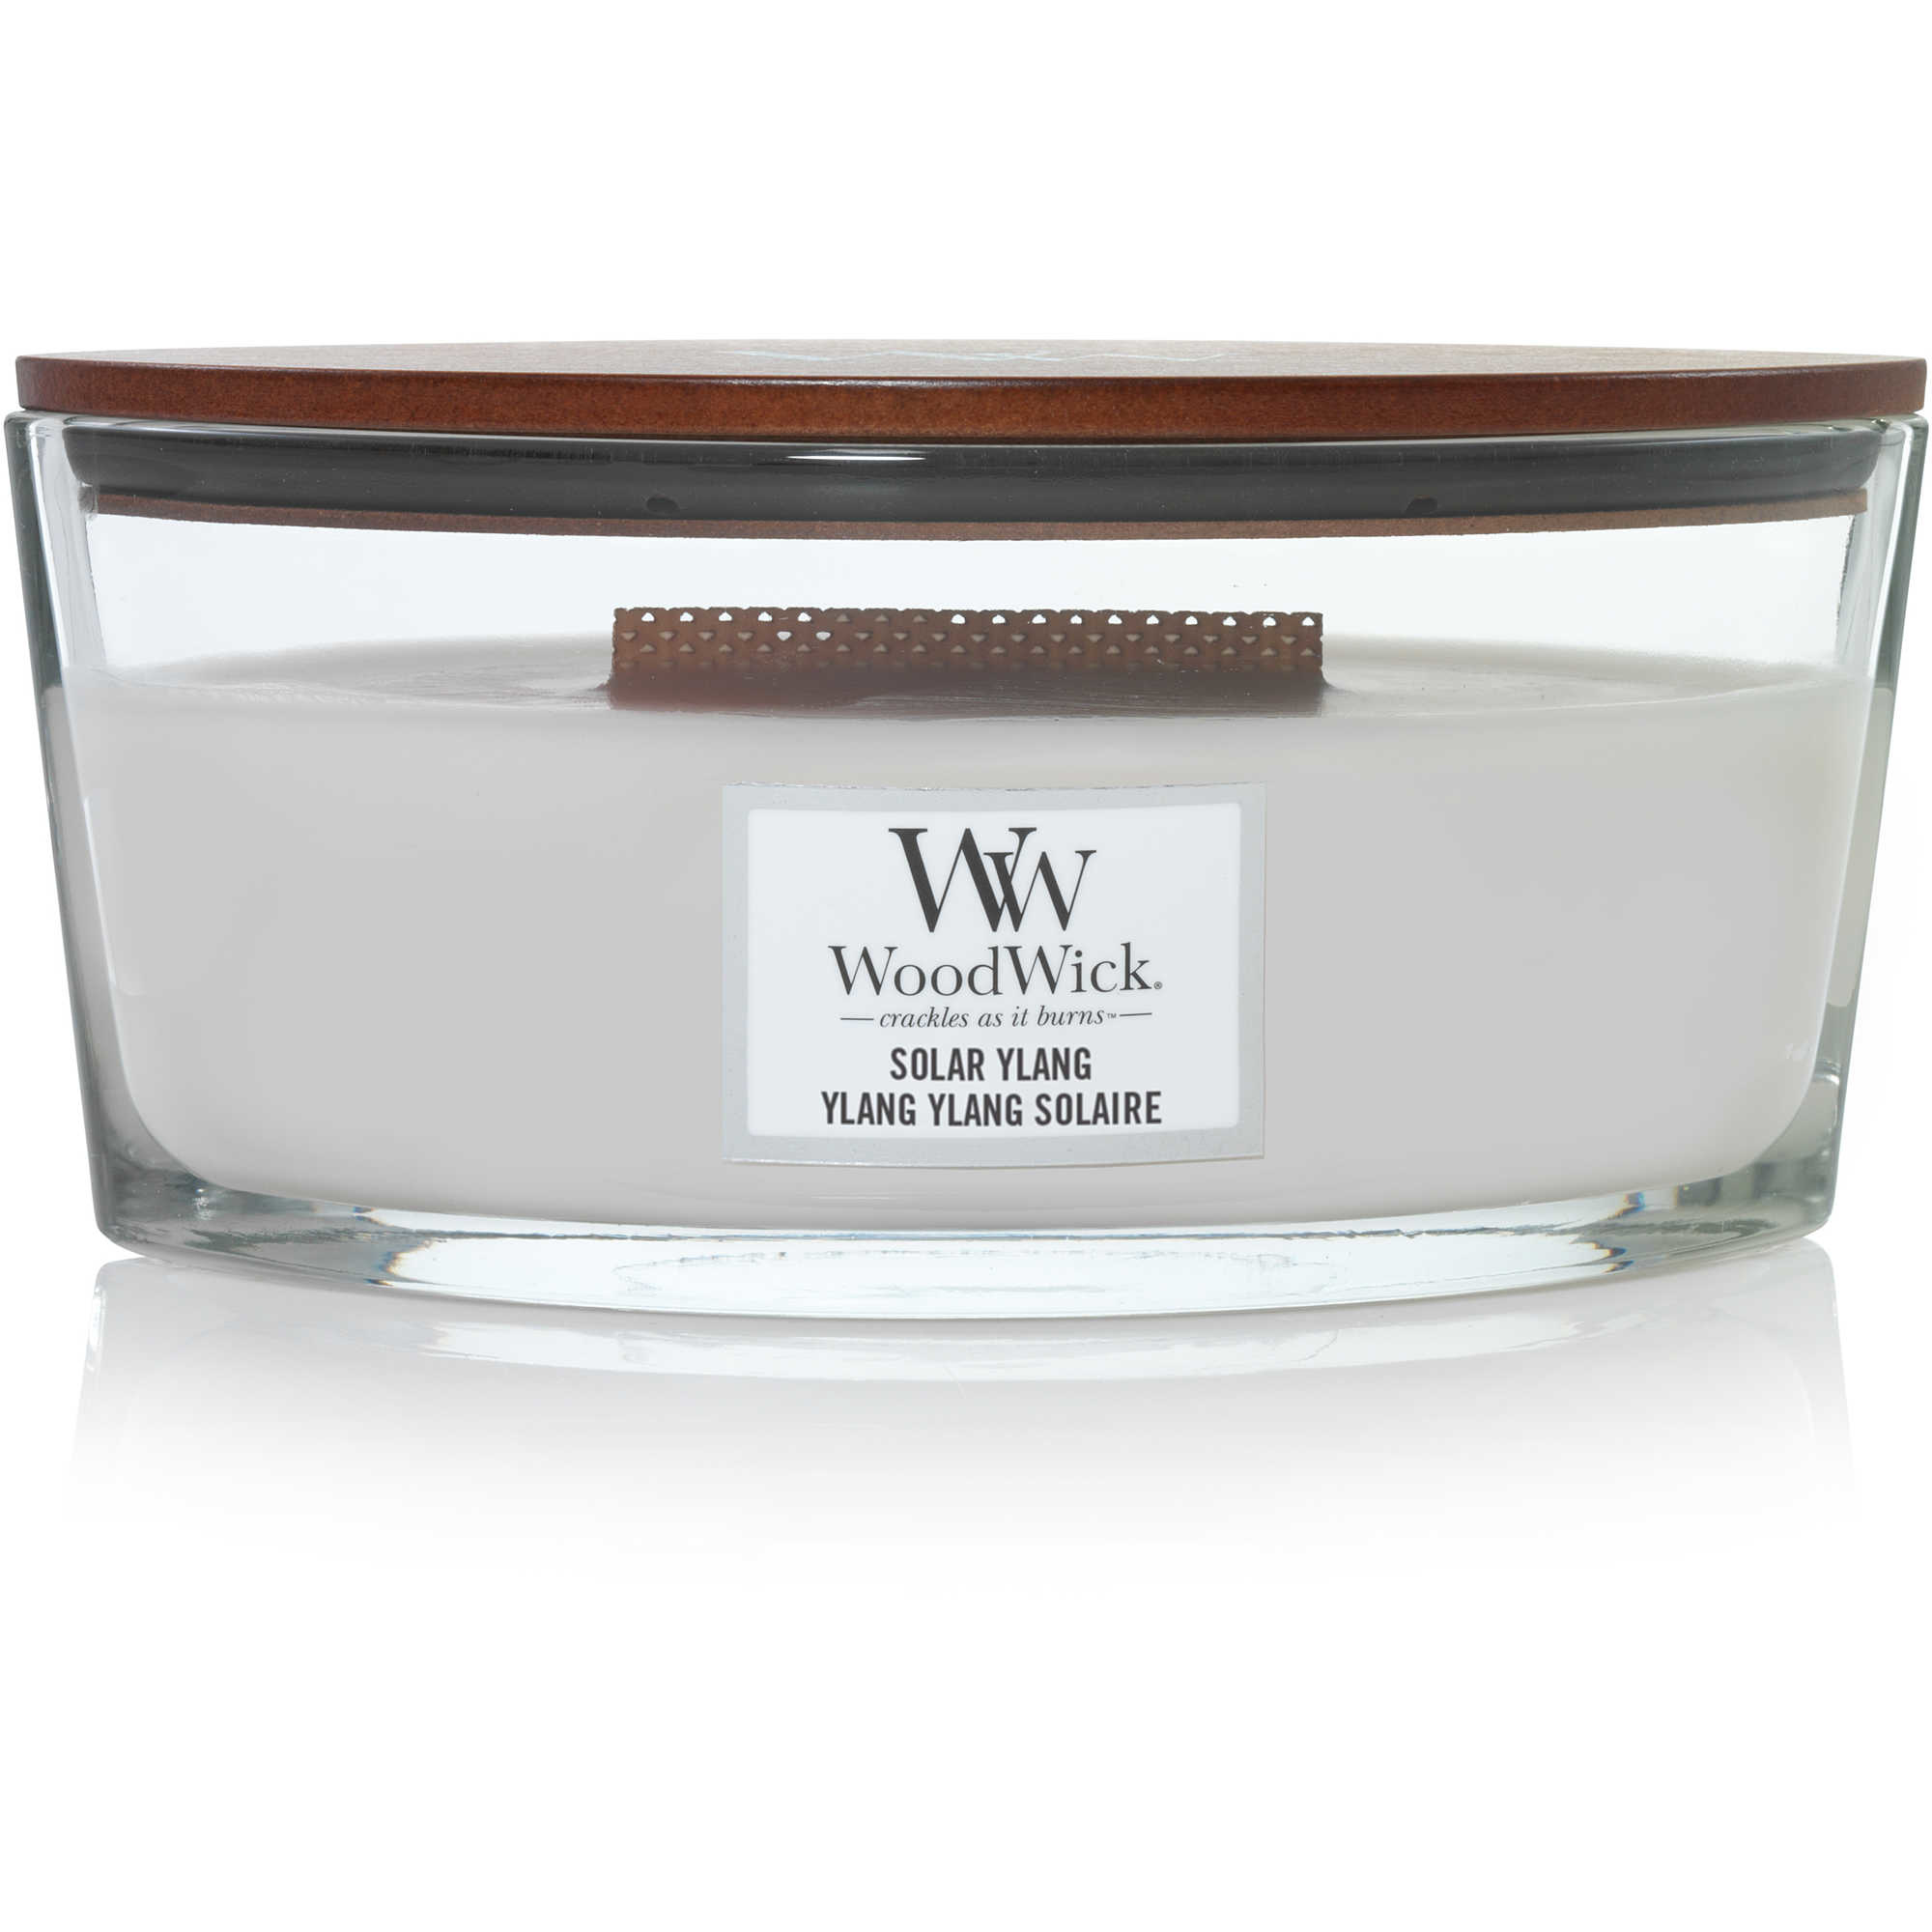 WOOD WICK bougie ylang ylang solaire ellipse-1